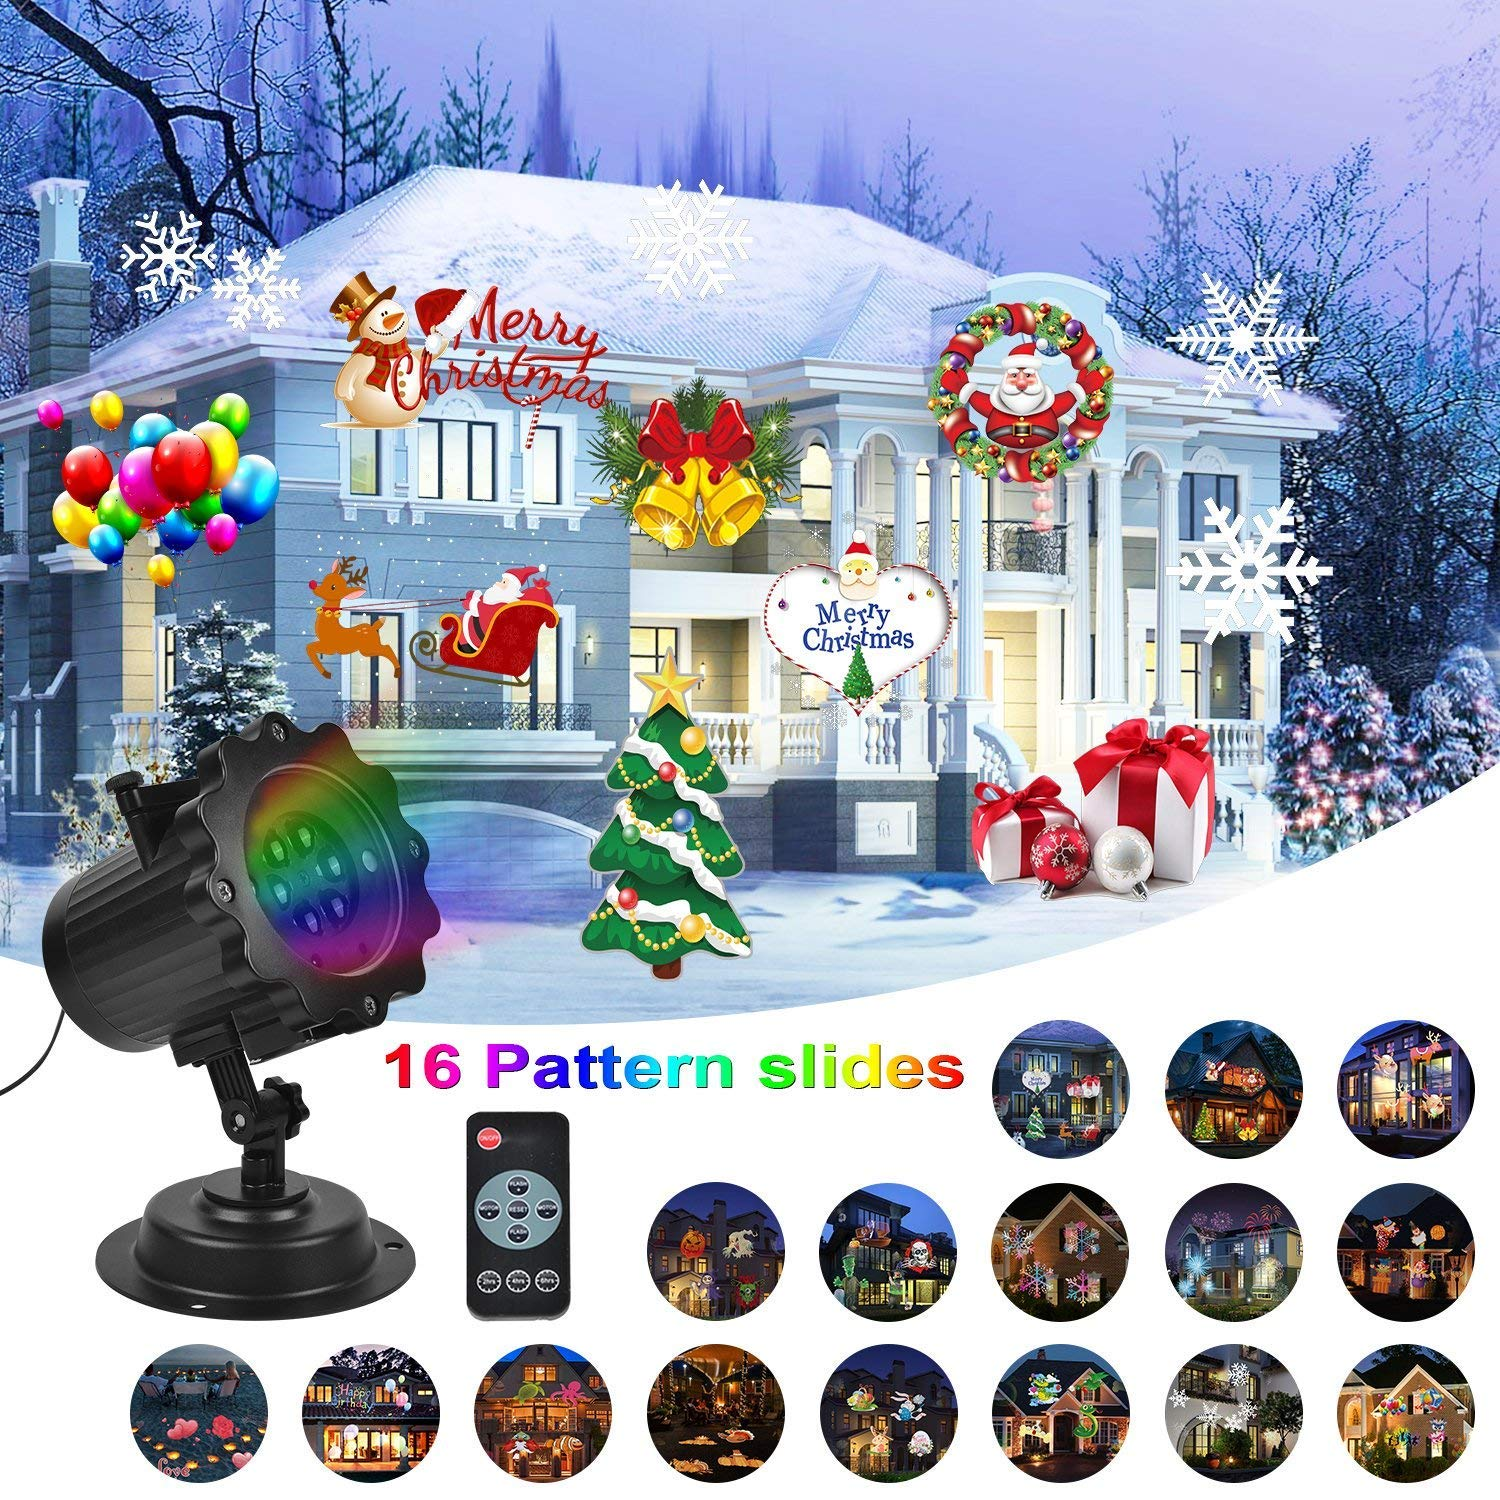 Christmas Light, KMASHI 16 Patterns Projector Light with Remote Control Timer Show Landscape lamp, Waterproof Holiday LED Light for New Year or Easter Day Halloween Decorations